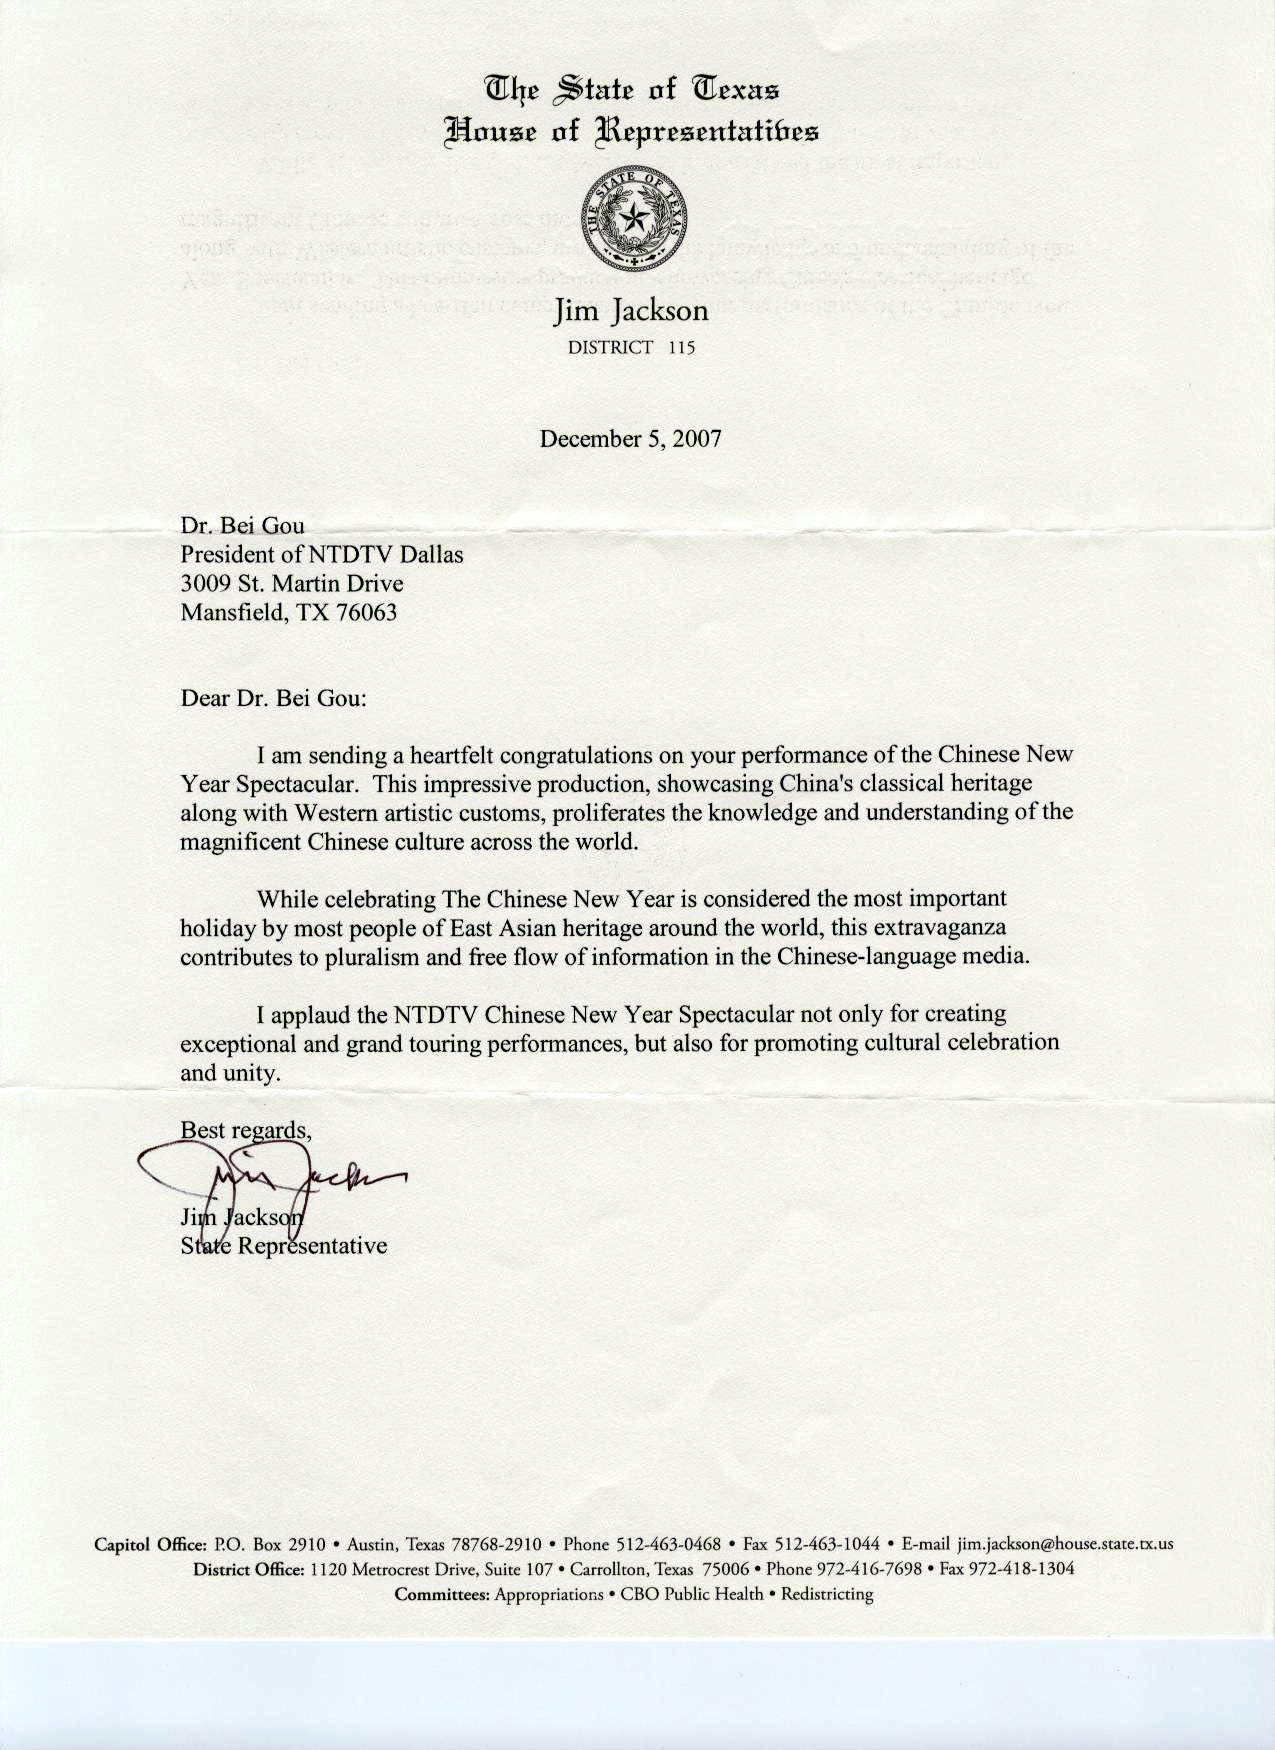 letter of greeting from texas state representative jim jackson